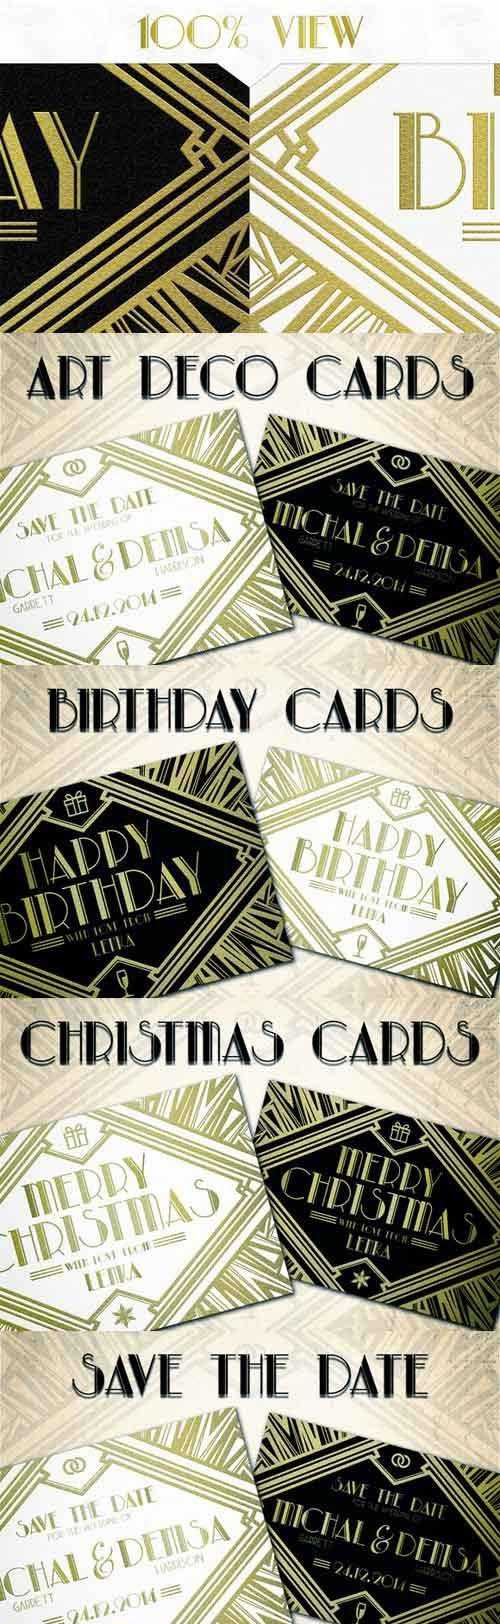 CM - Art Deco Cards 123076